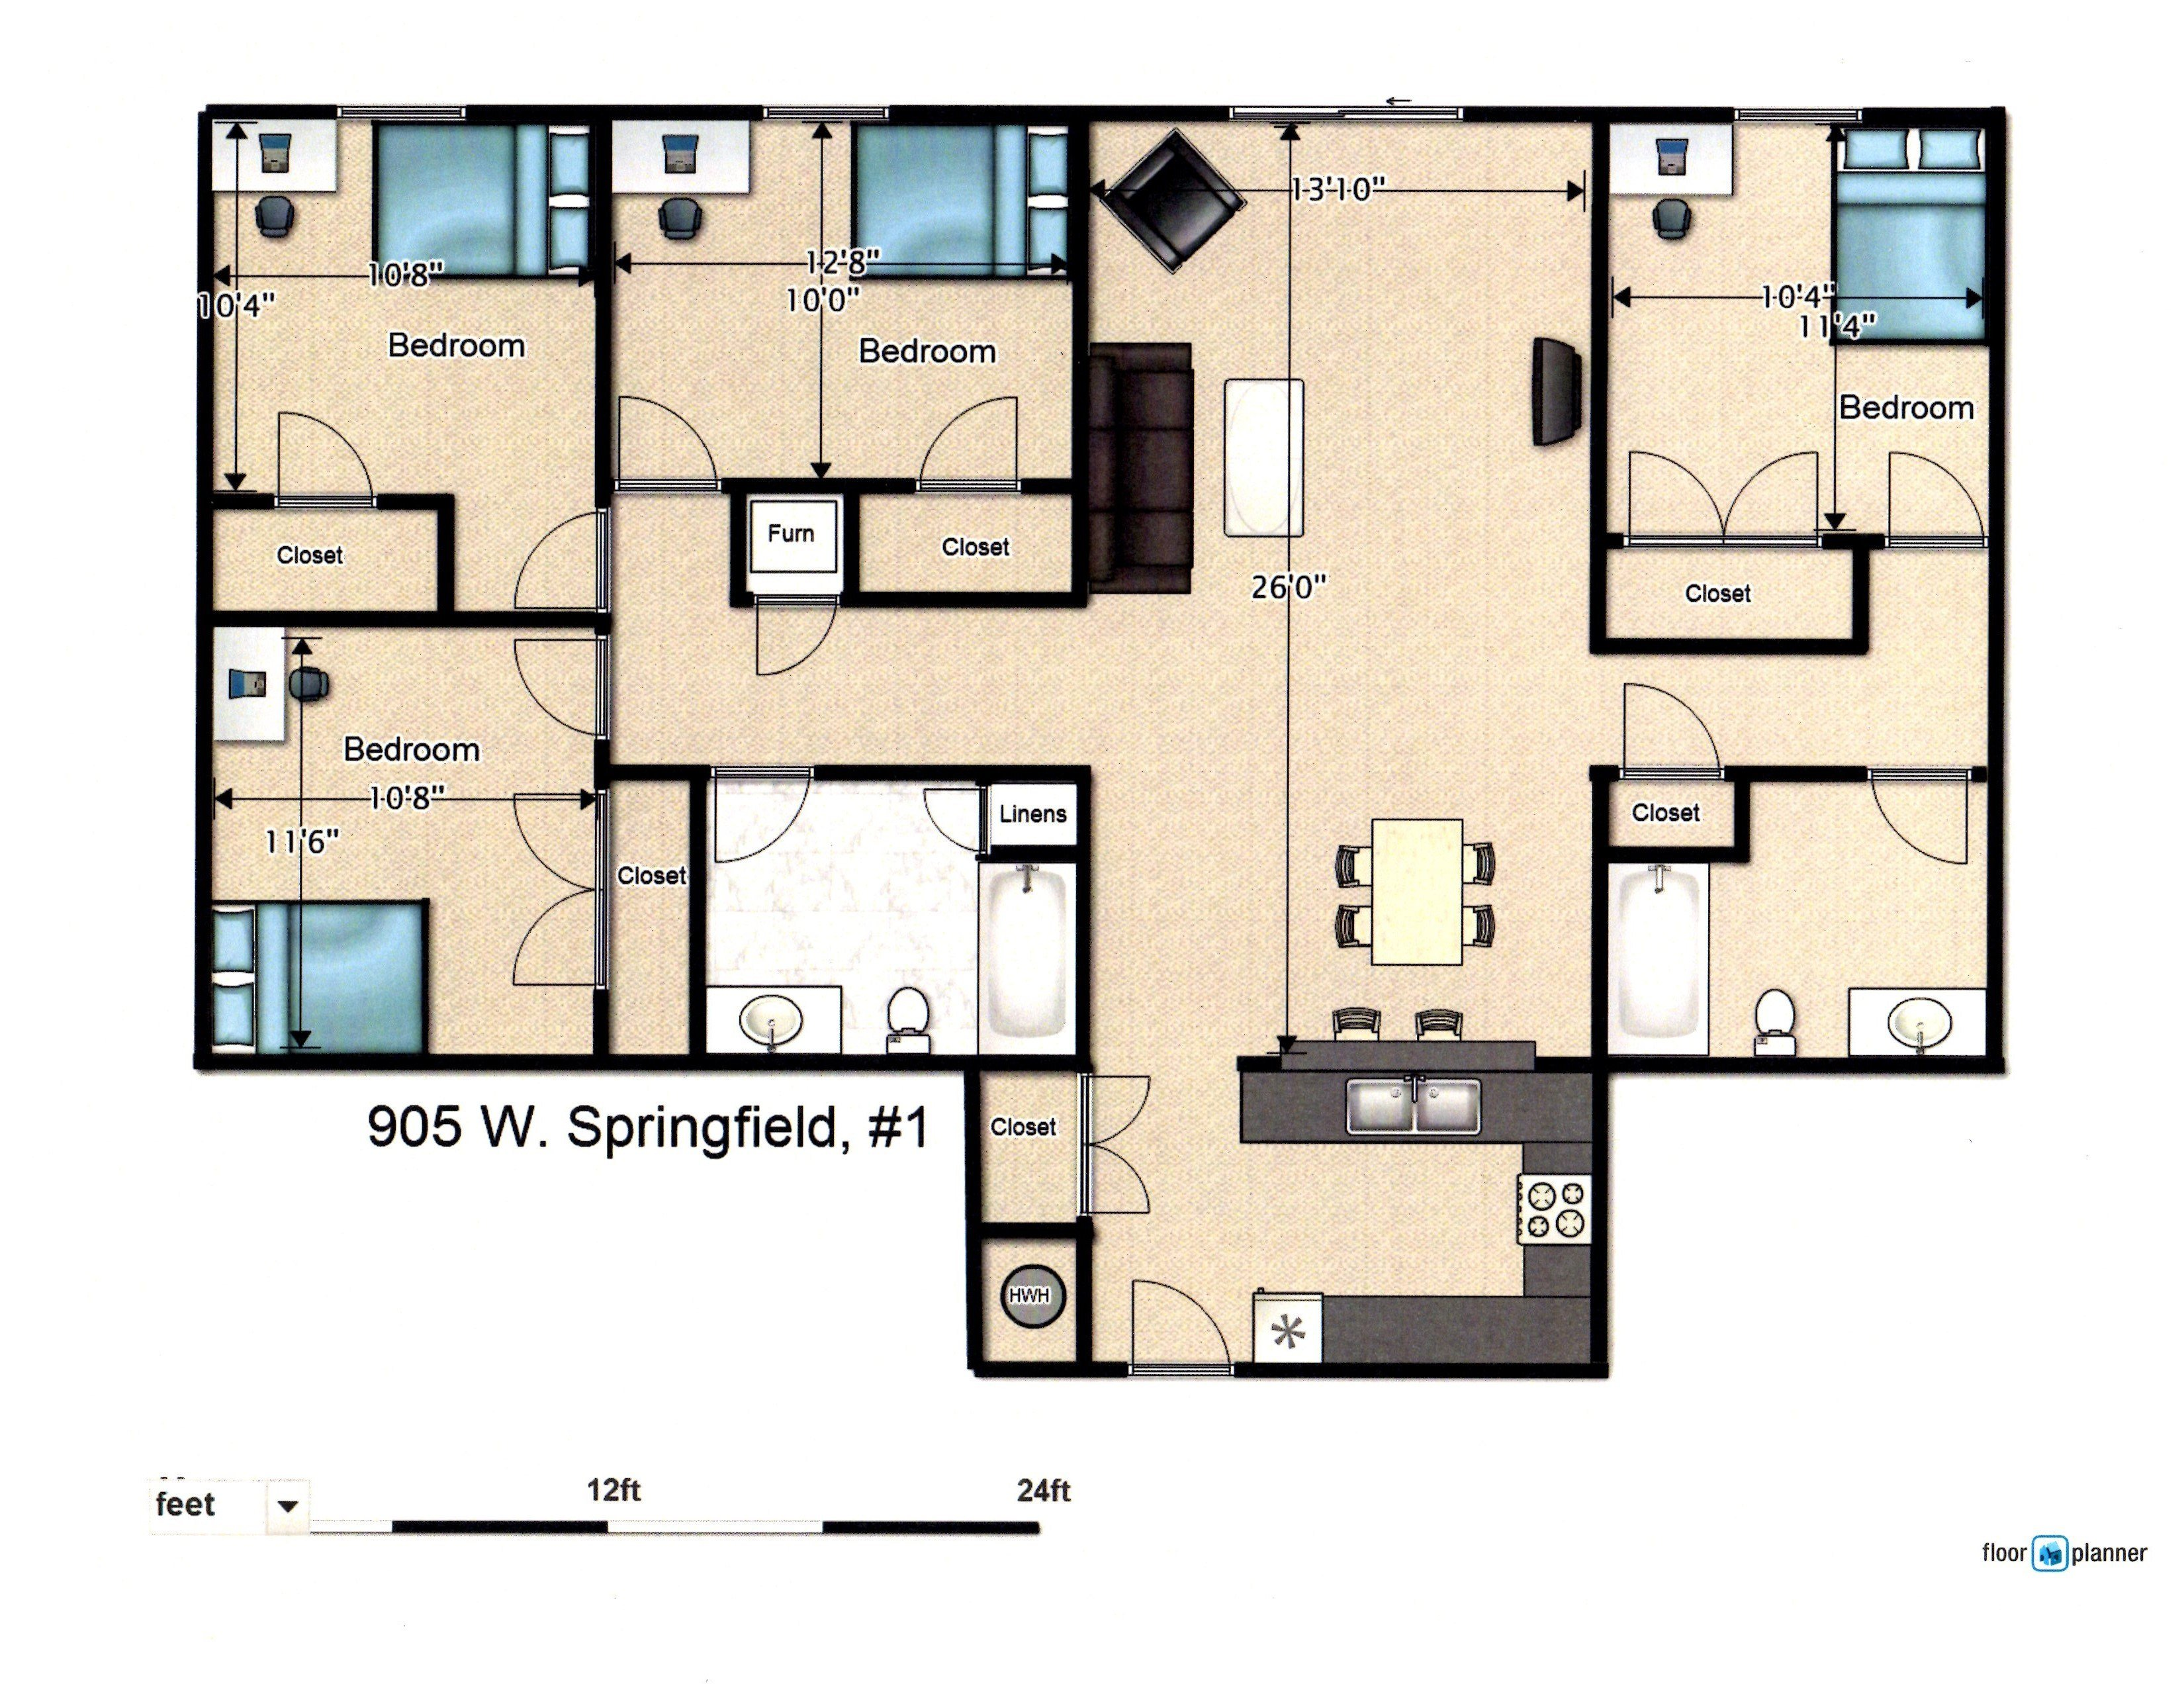 Best 4 Bedroom Apartment 905 W Springfield Ave Urbana Il With Pictures